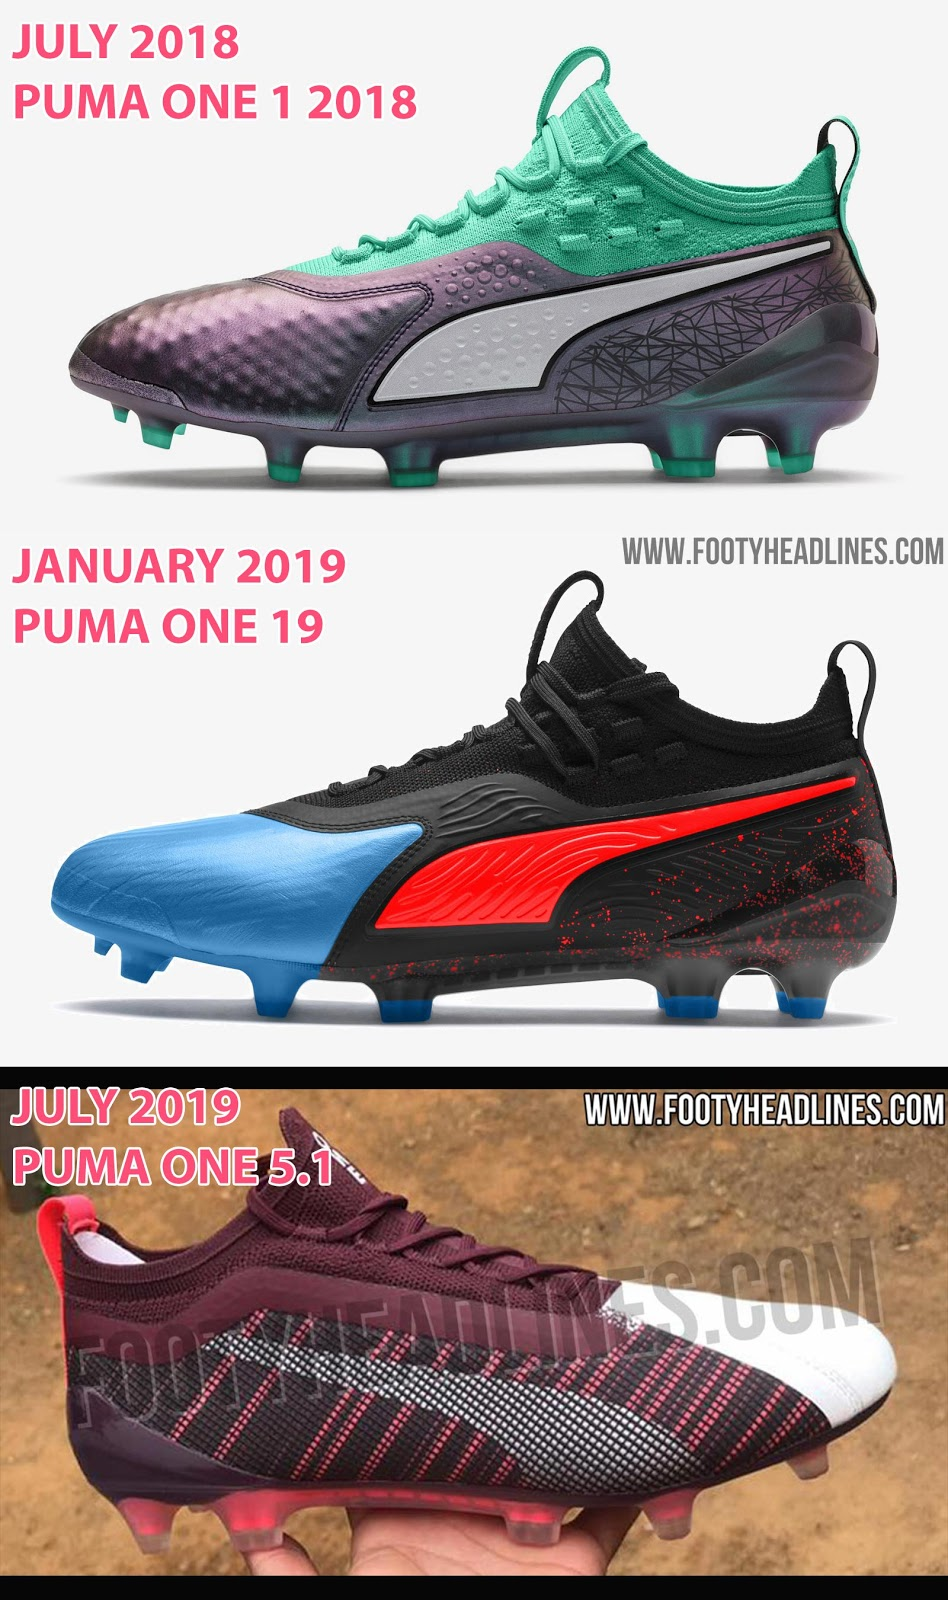 9cf1348e9 January   July - Puma Releases Next-Gen Boots Every Six Months